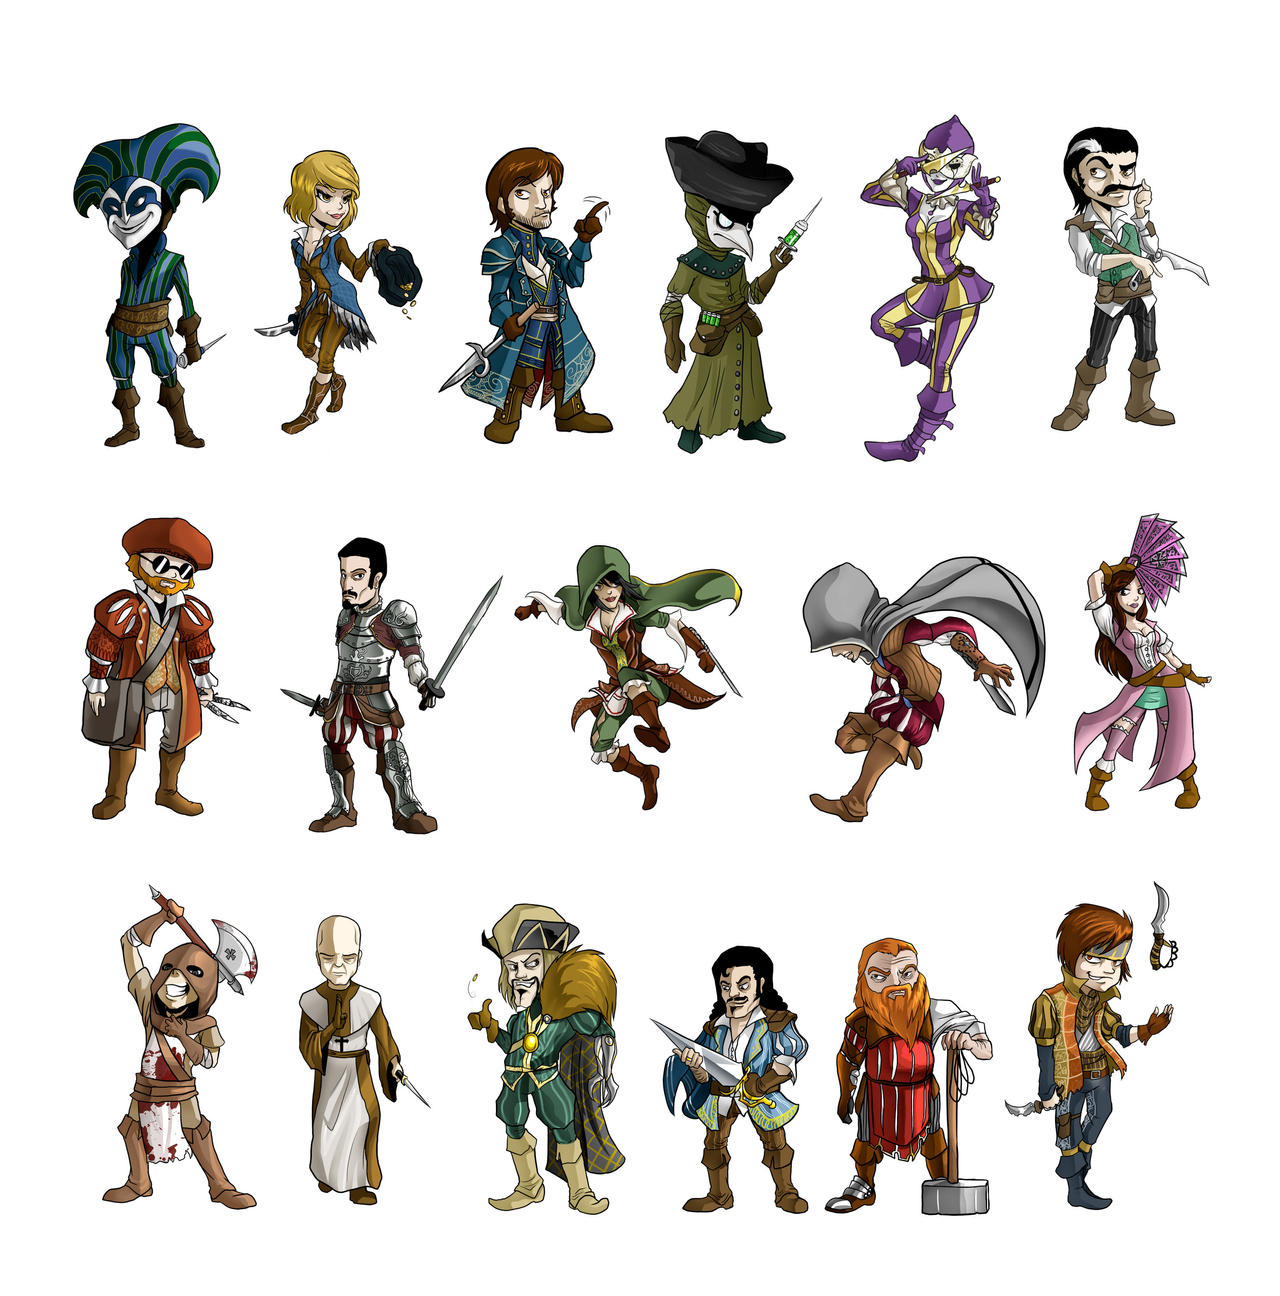 multiplayer_characters_by_edux567-d32wbk